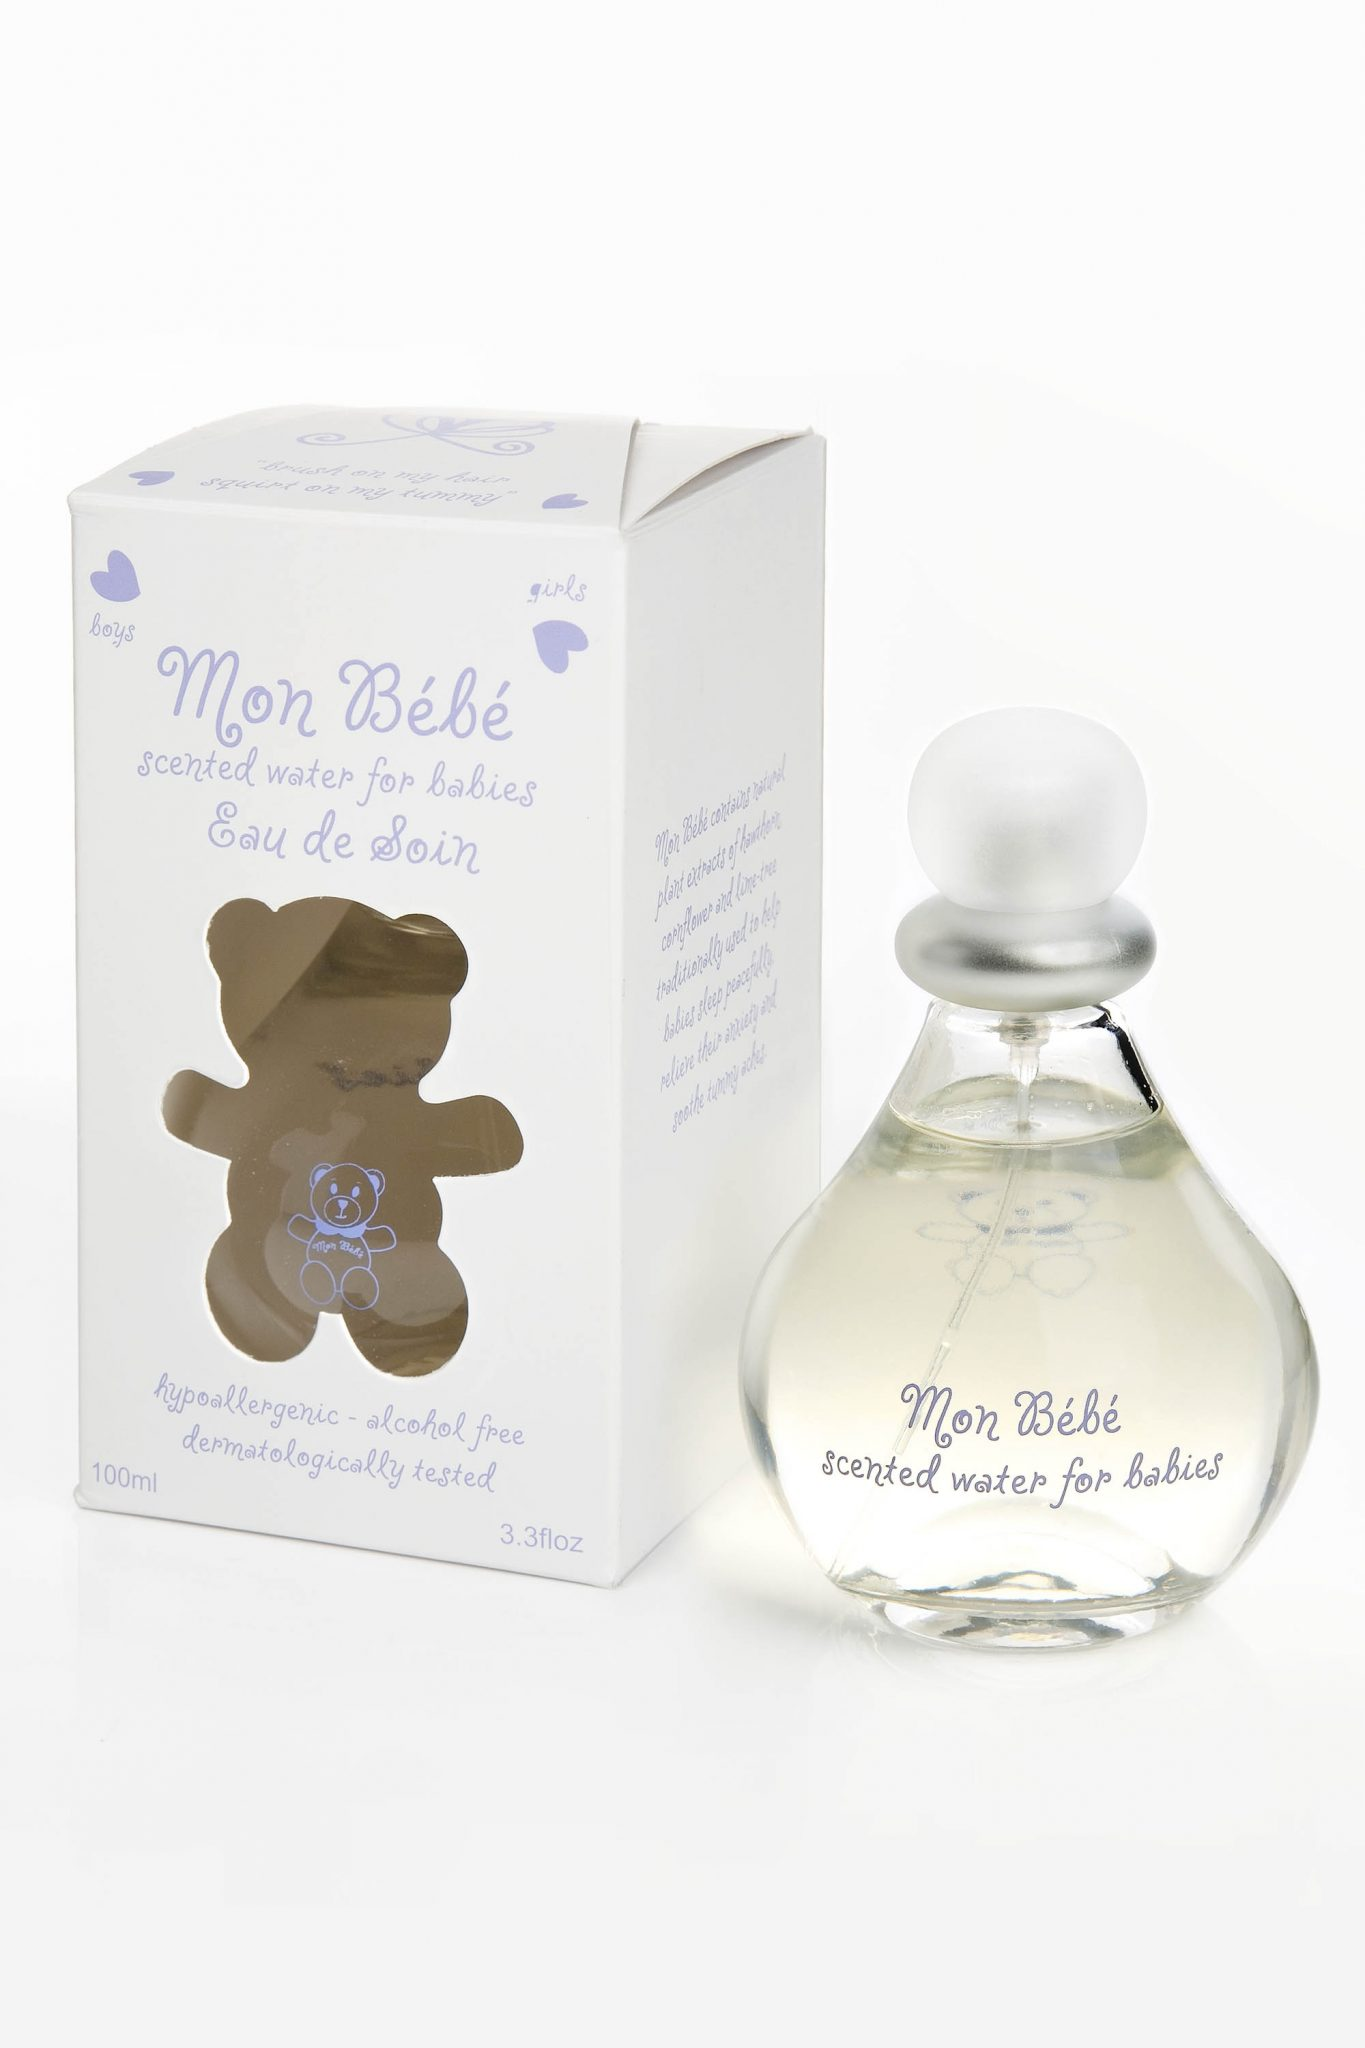 Friday competiton: Win a bottle of Mon Bebe perfume